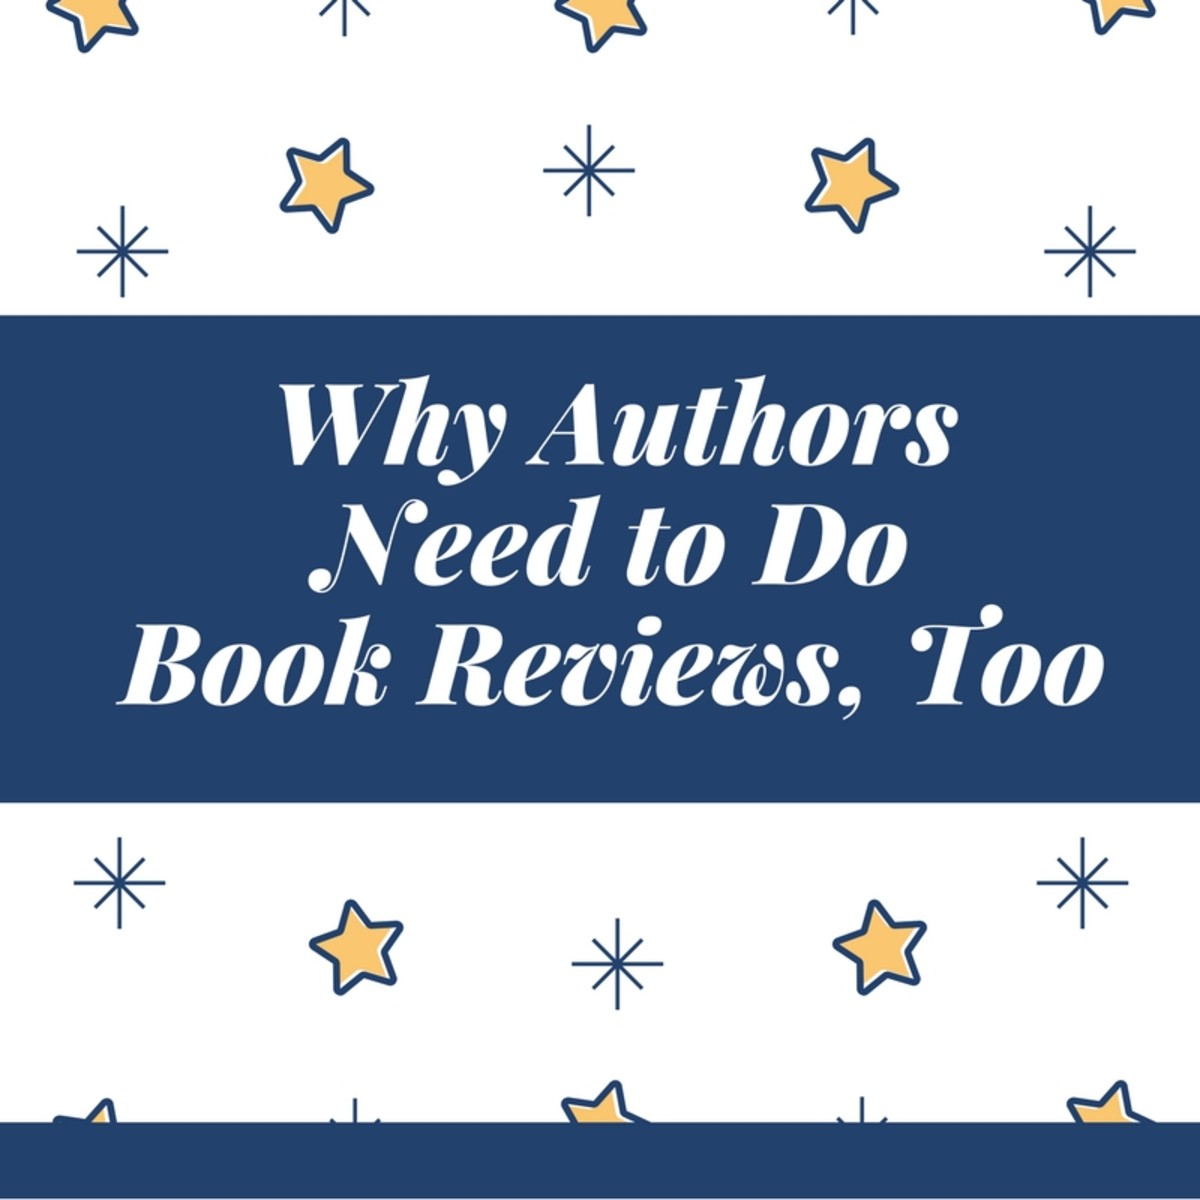 book-reviews-why-authors-need-to-do-them